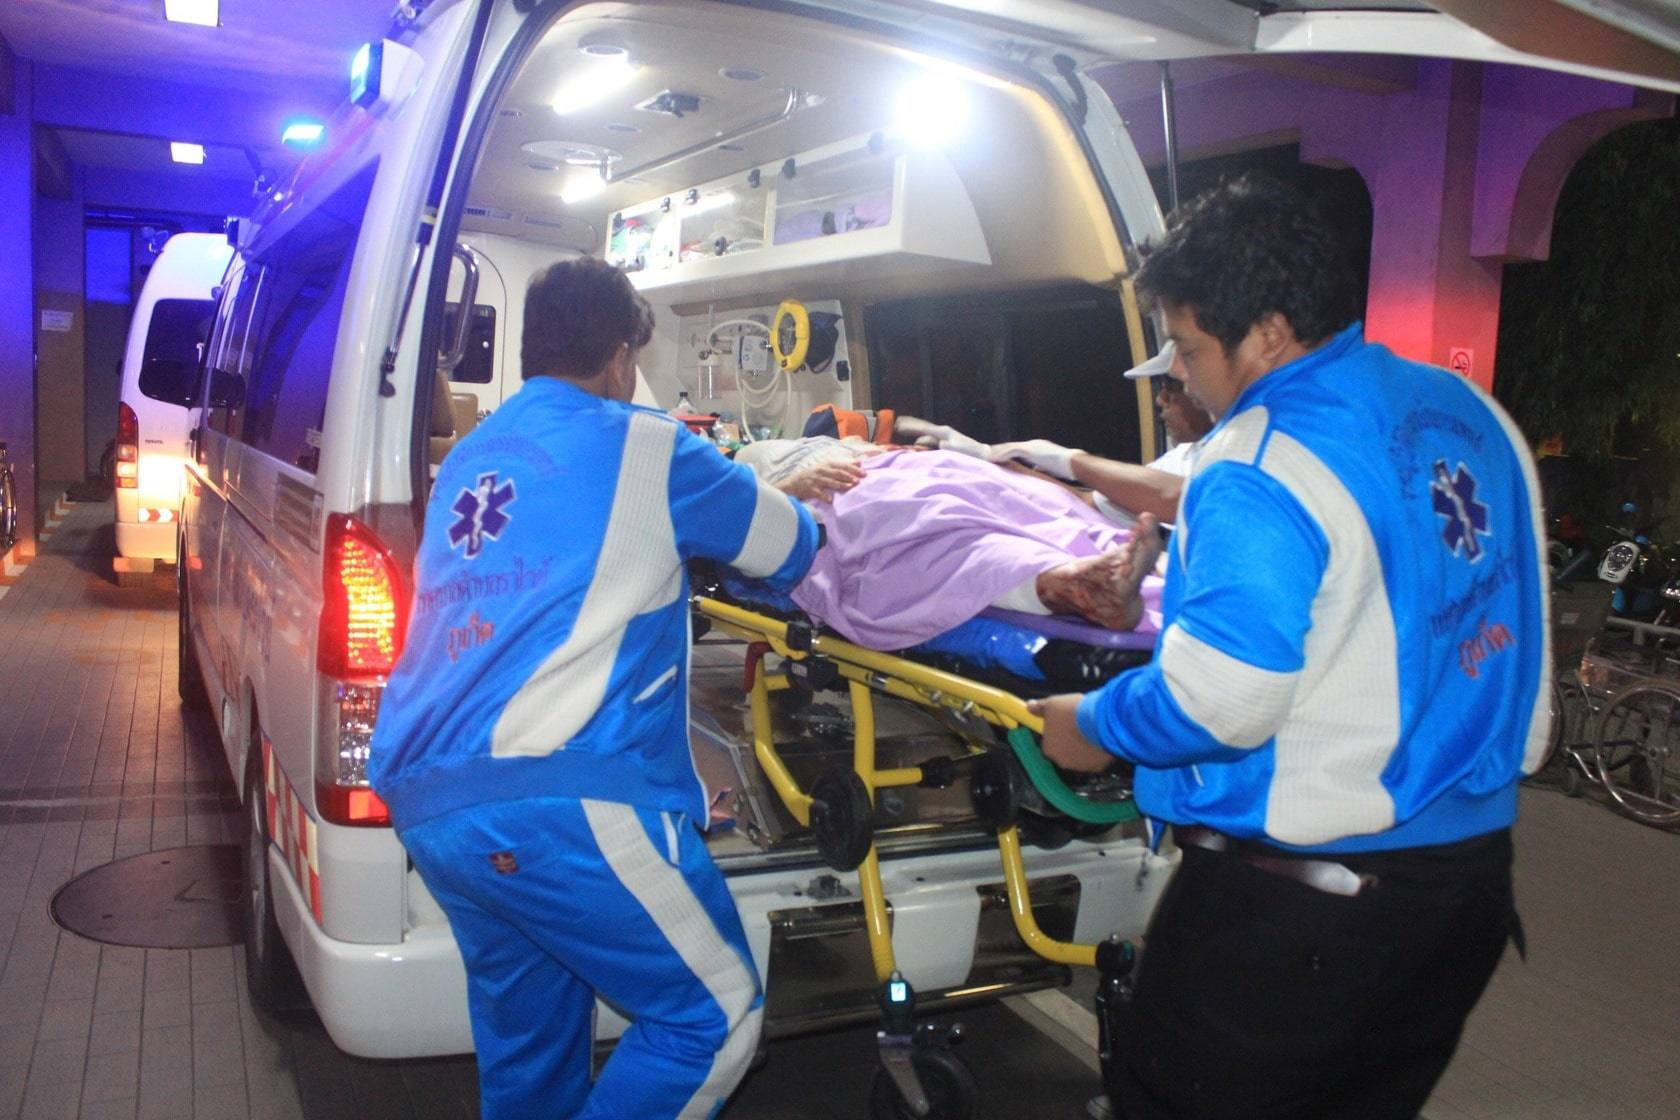 Russian Woman shot and robbed in Rawai | The Thaiger